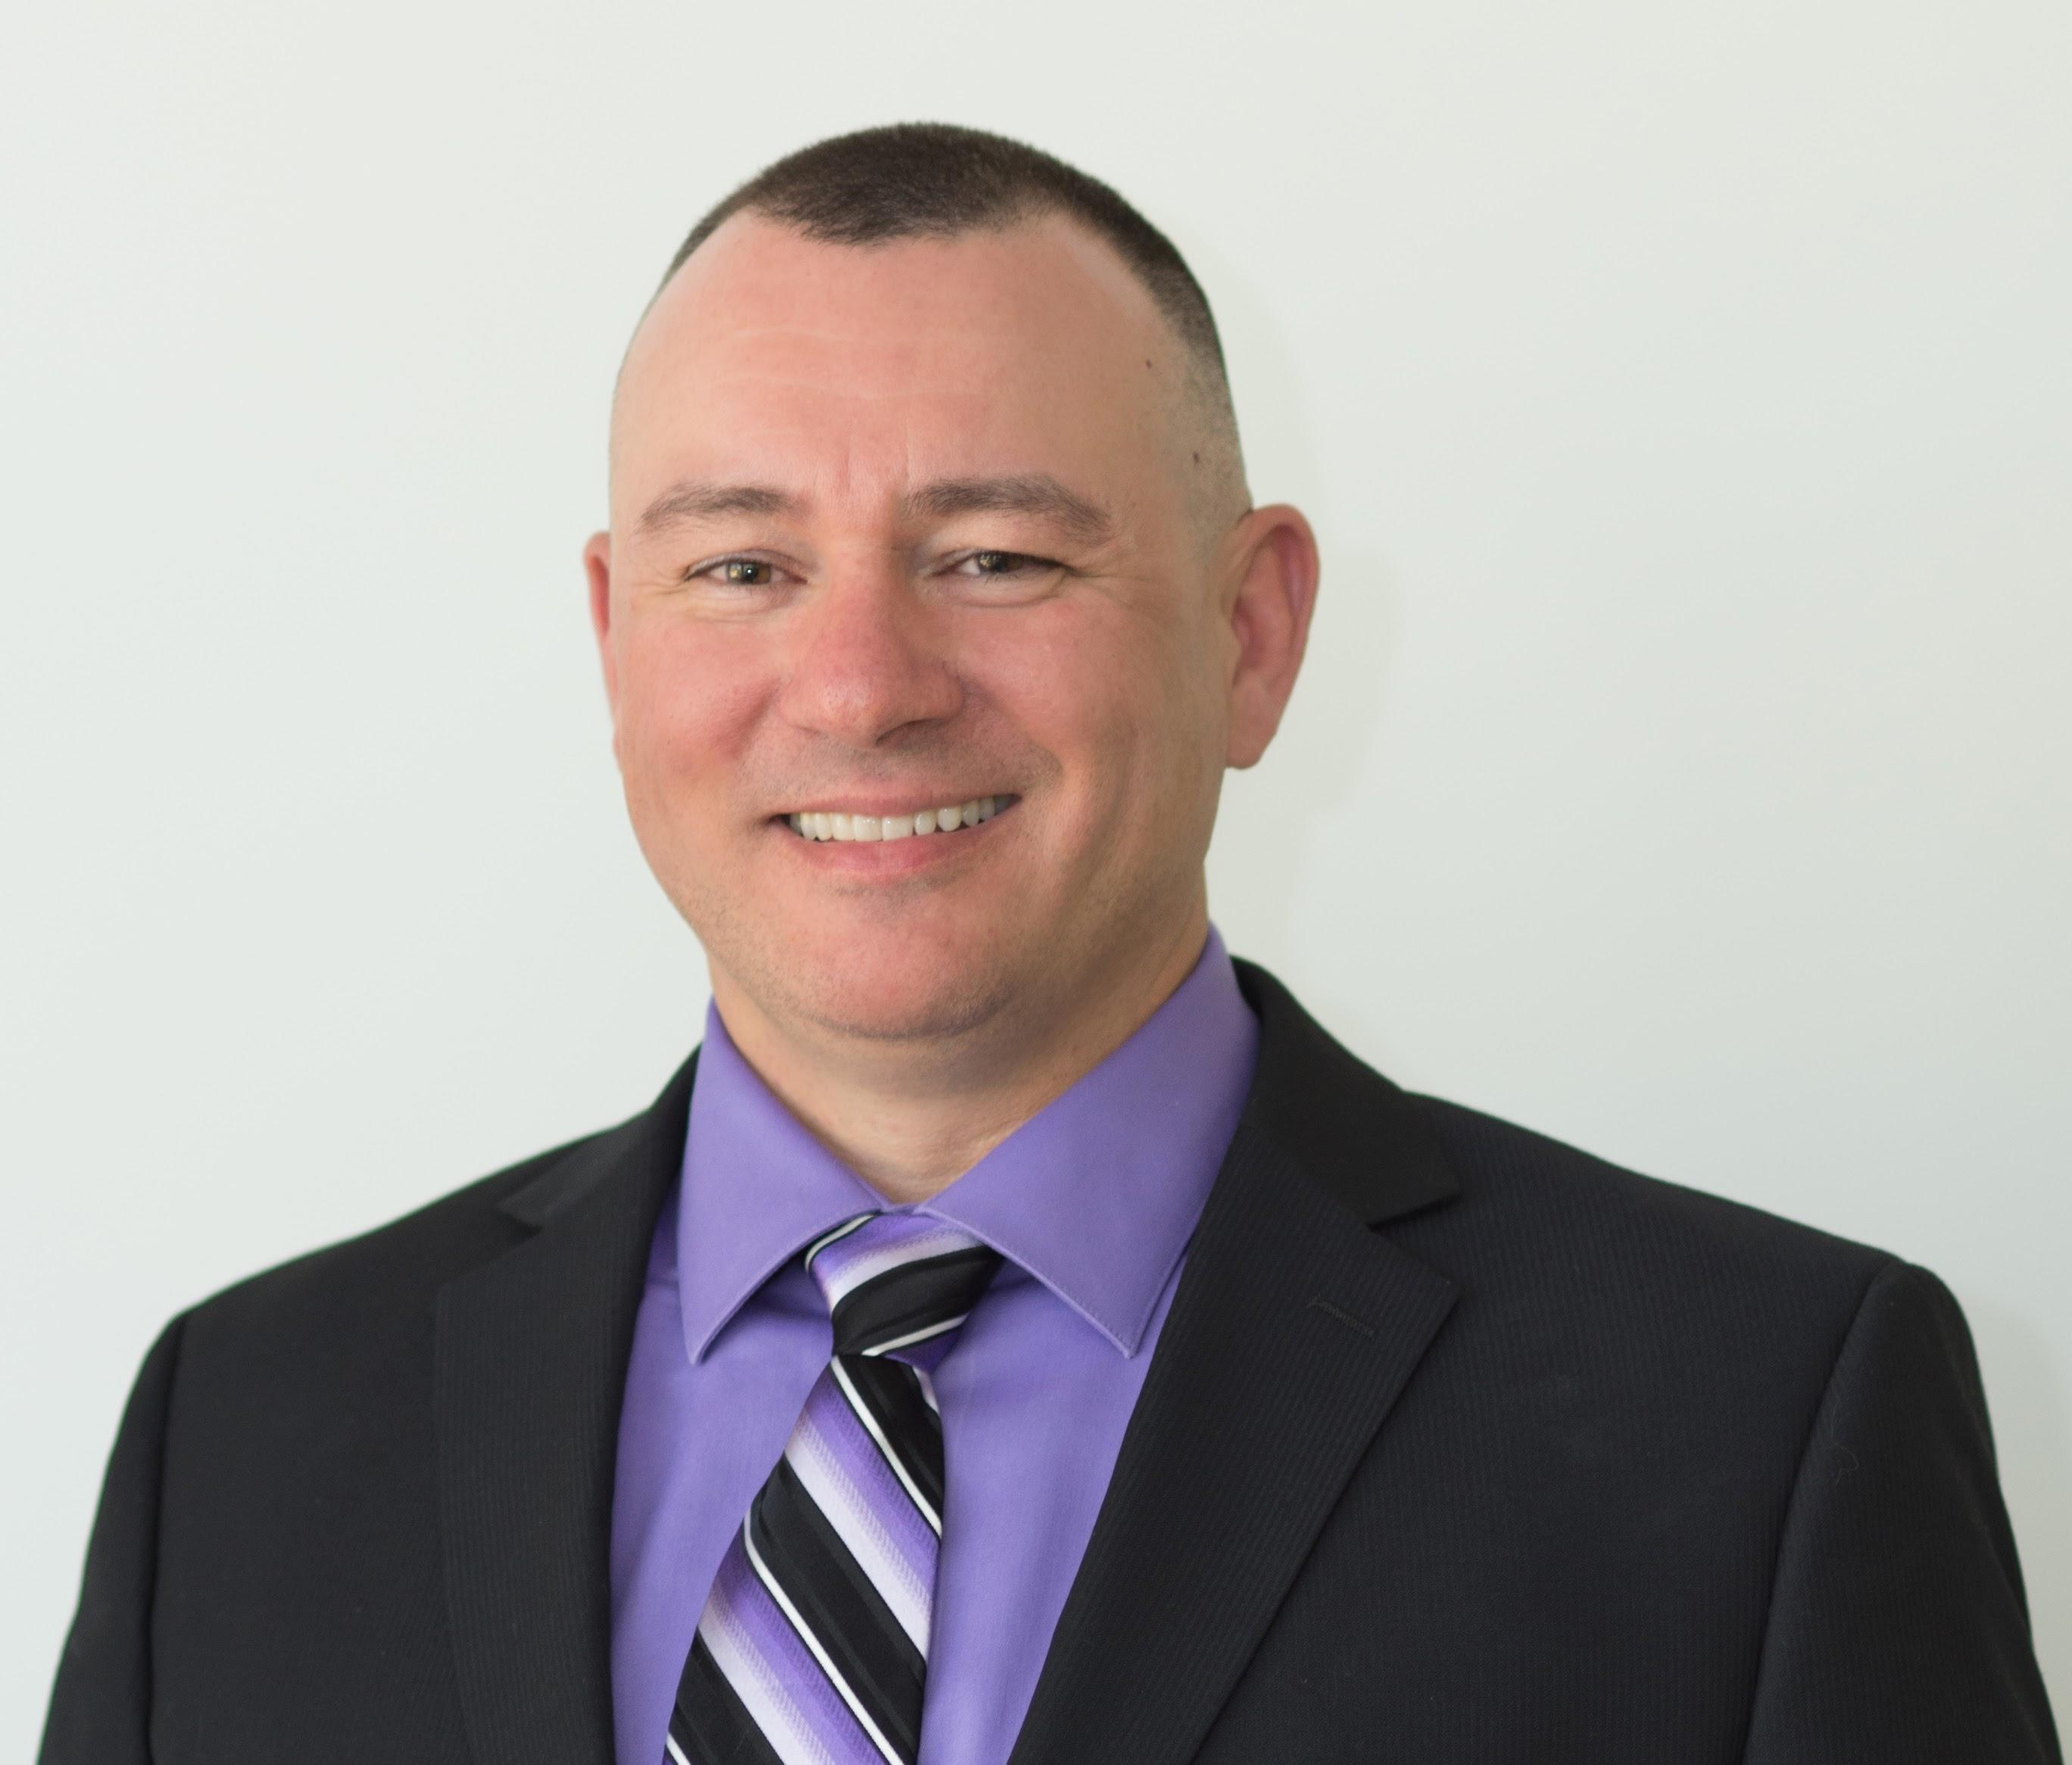 MARK FAUBLE PARTNER